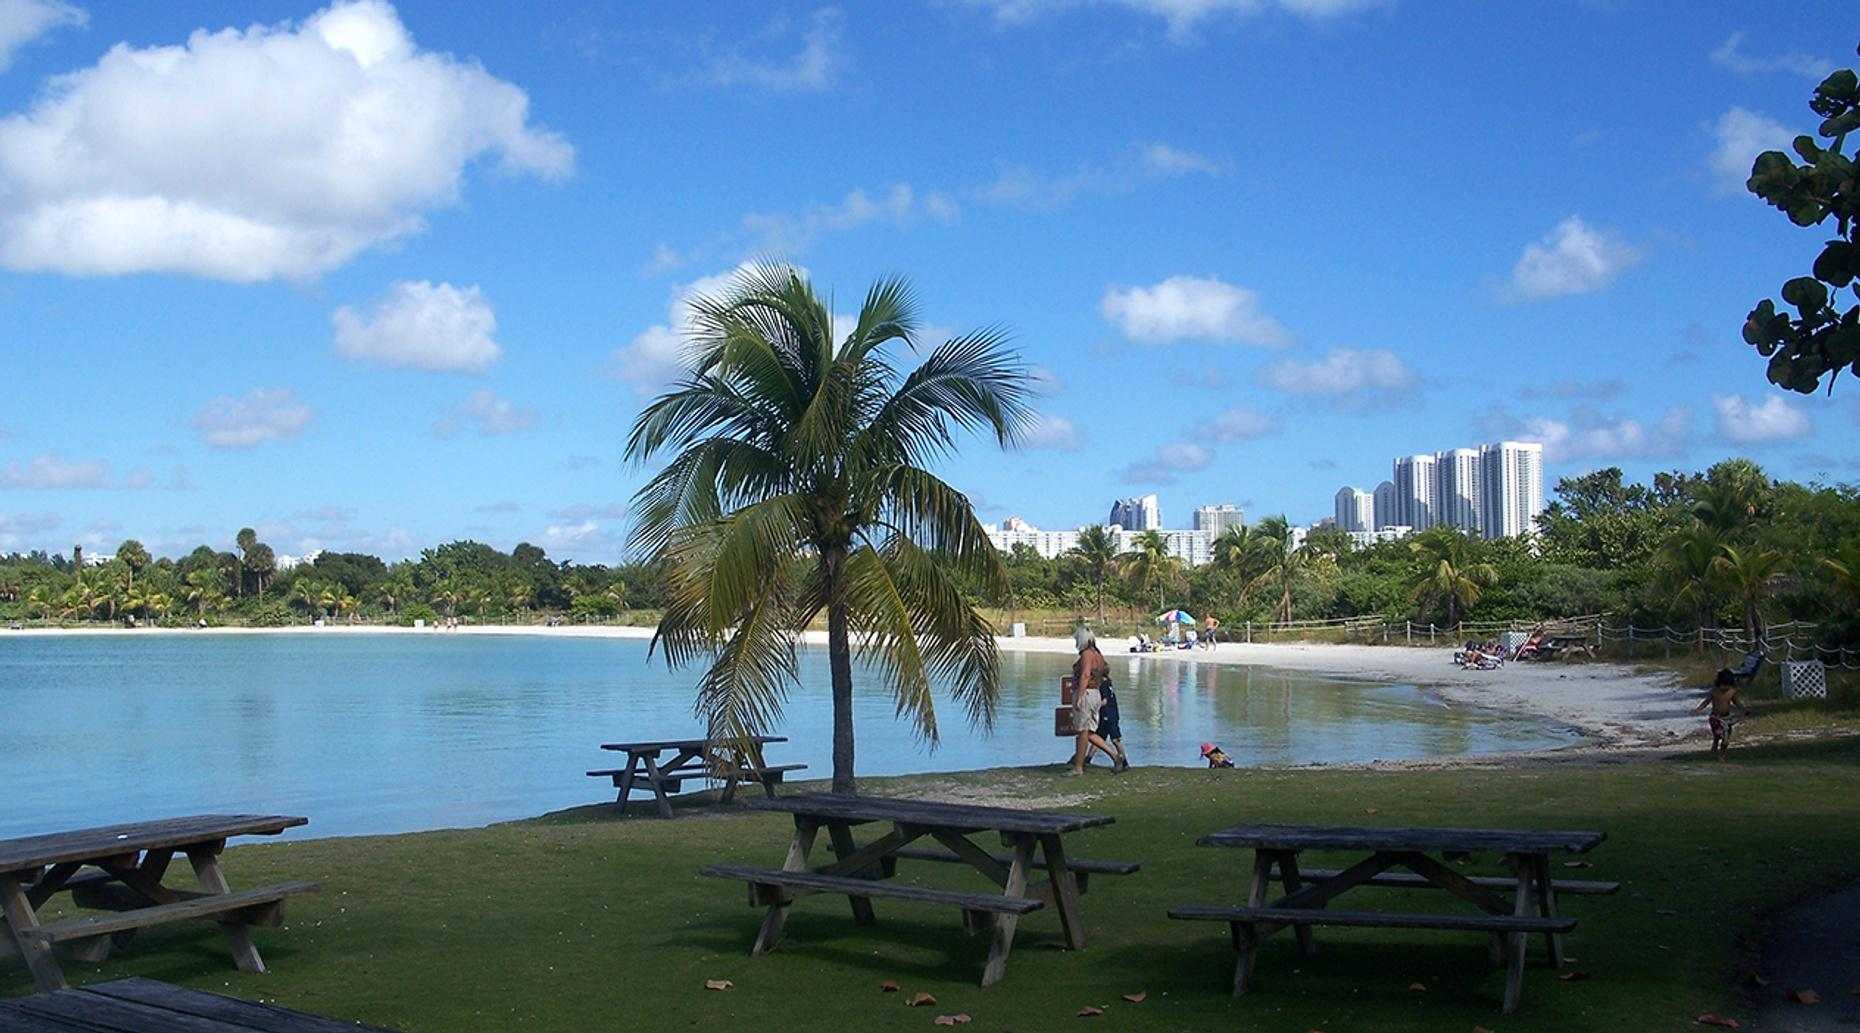 Stand-Up Paddleboard and BBQ at Oleta River Park